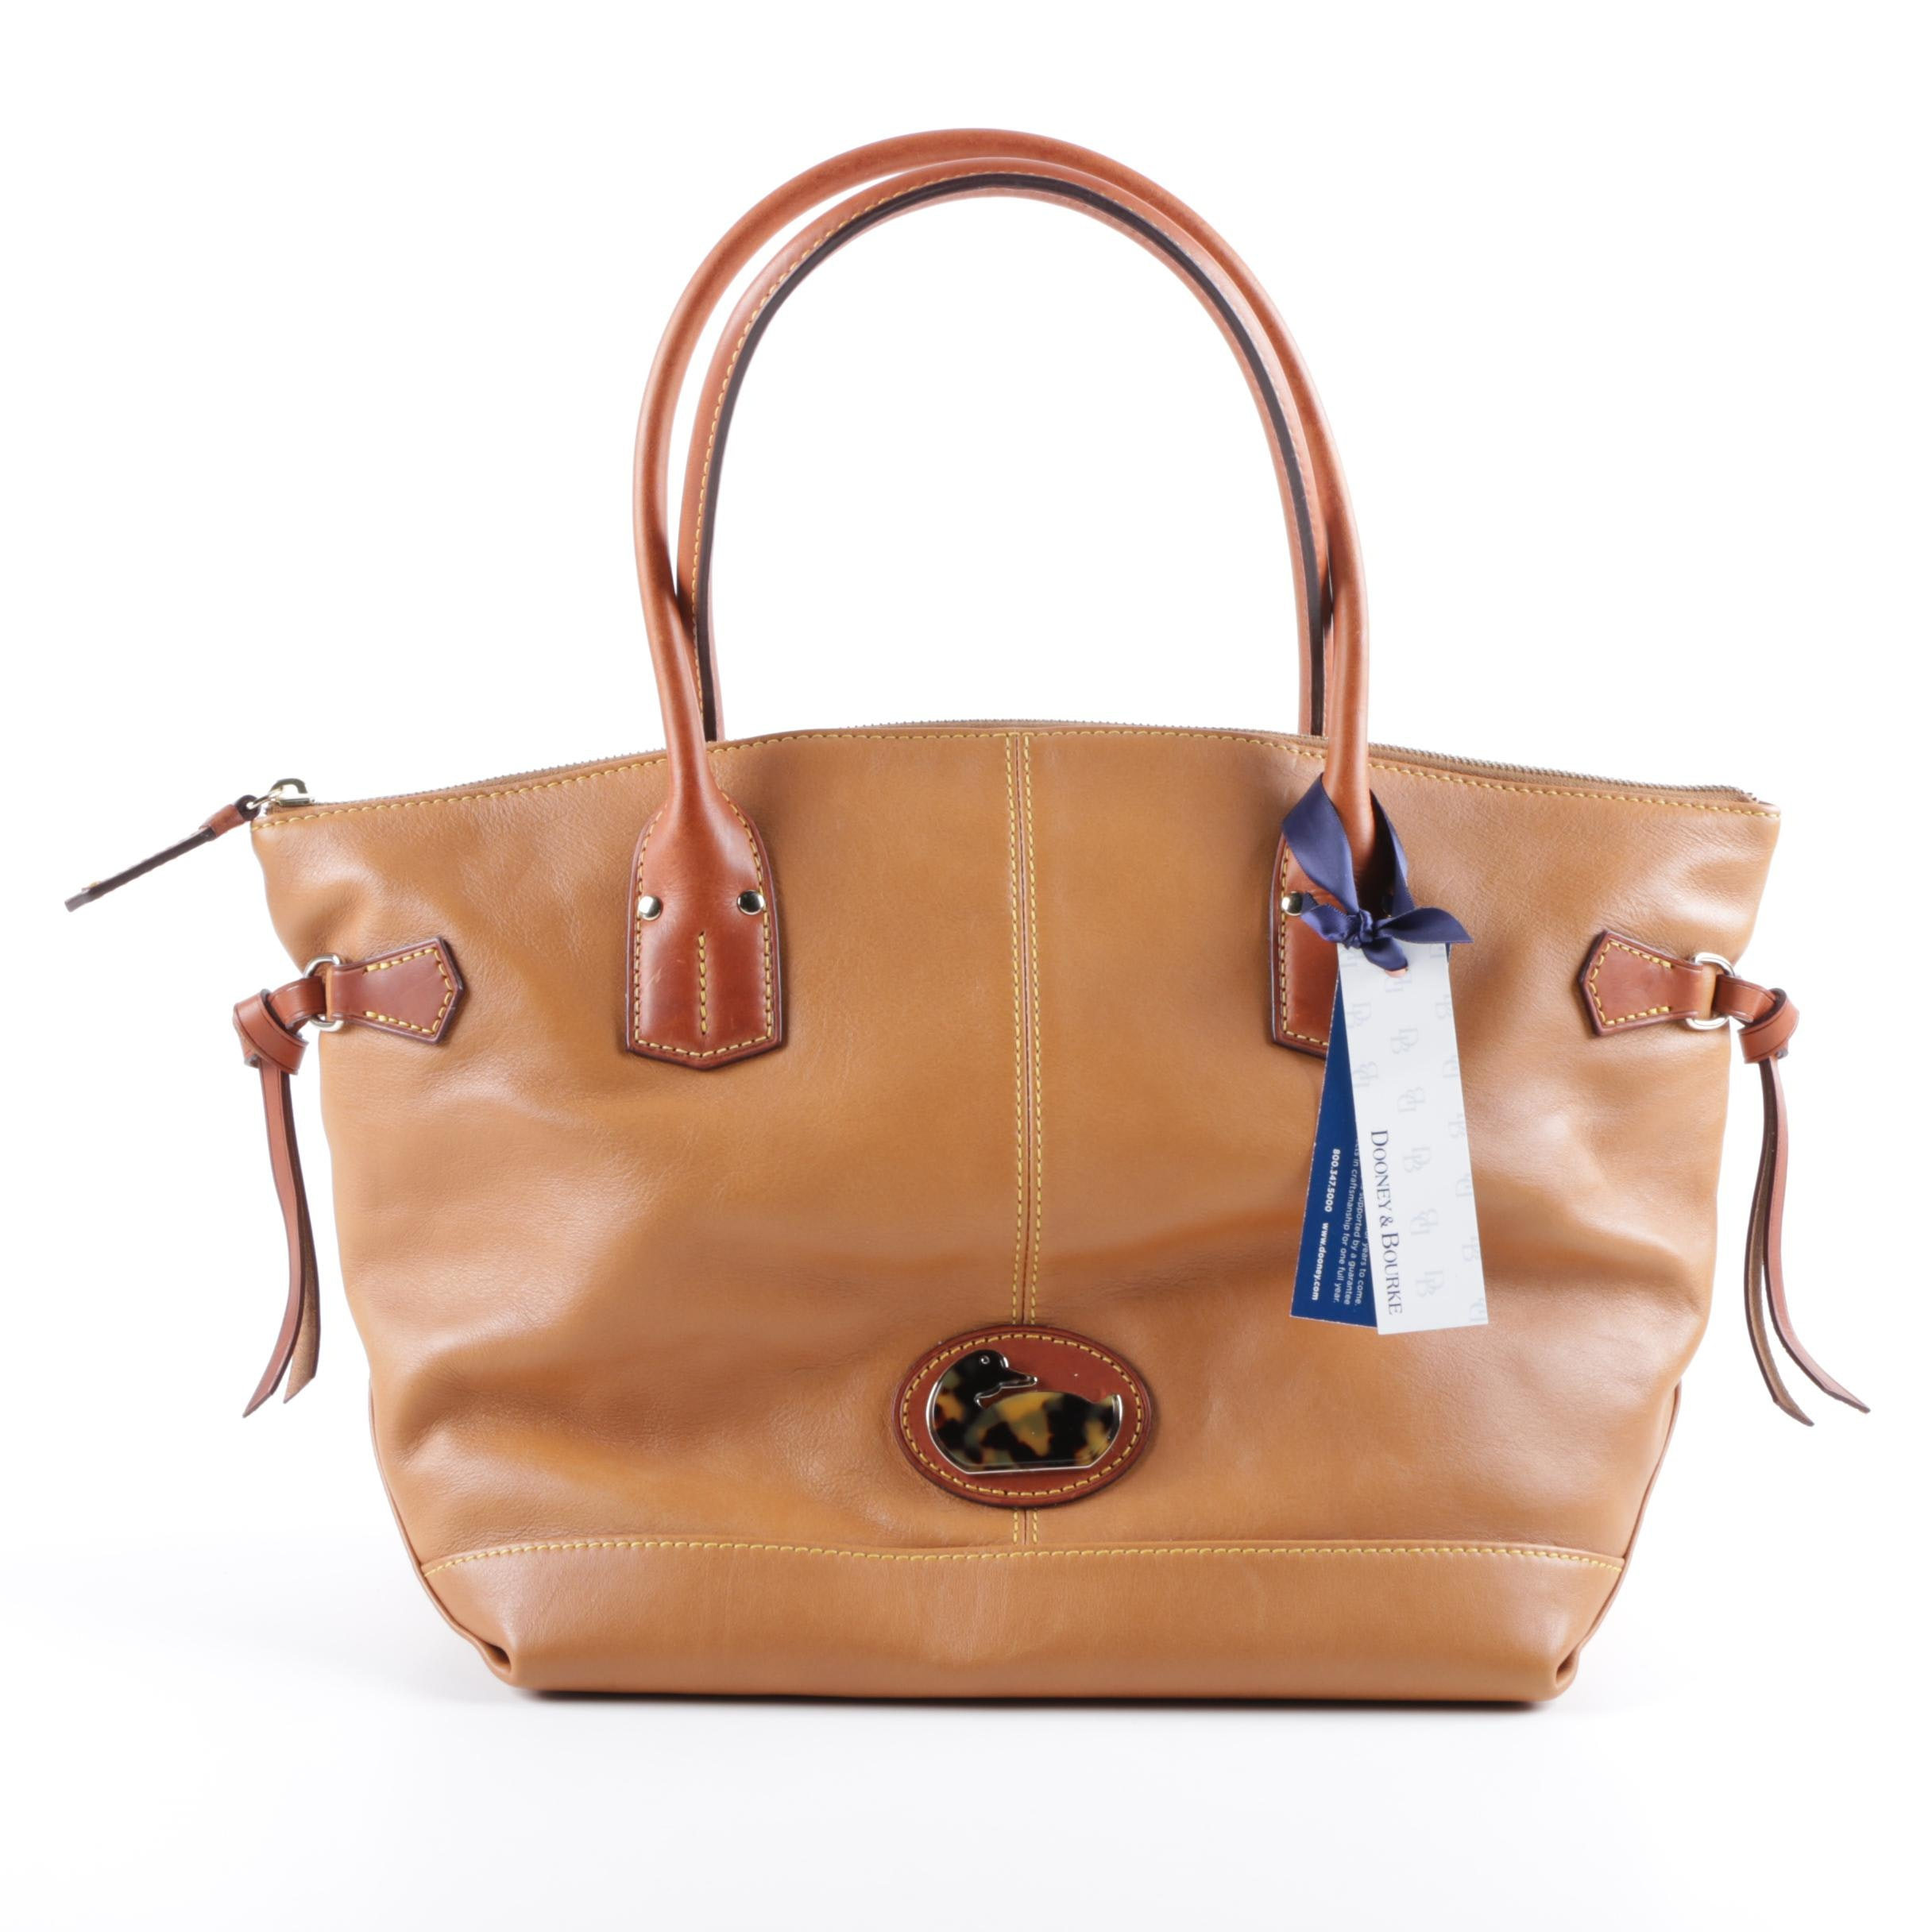 Dooney & Bourke Tan Leather Satchel